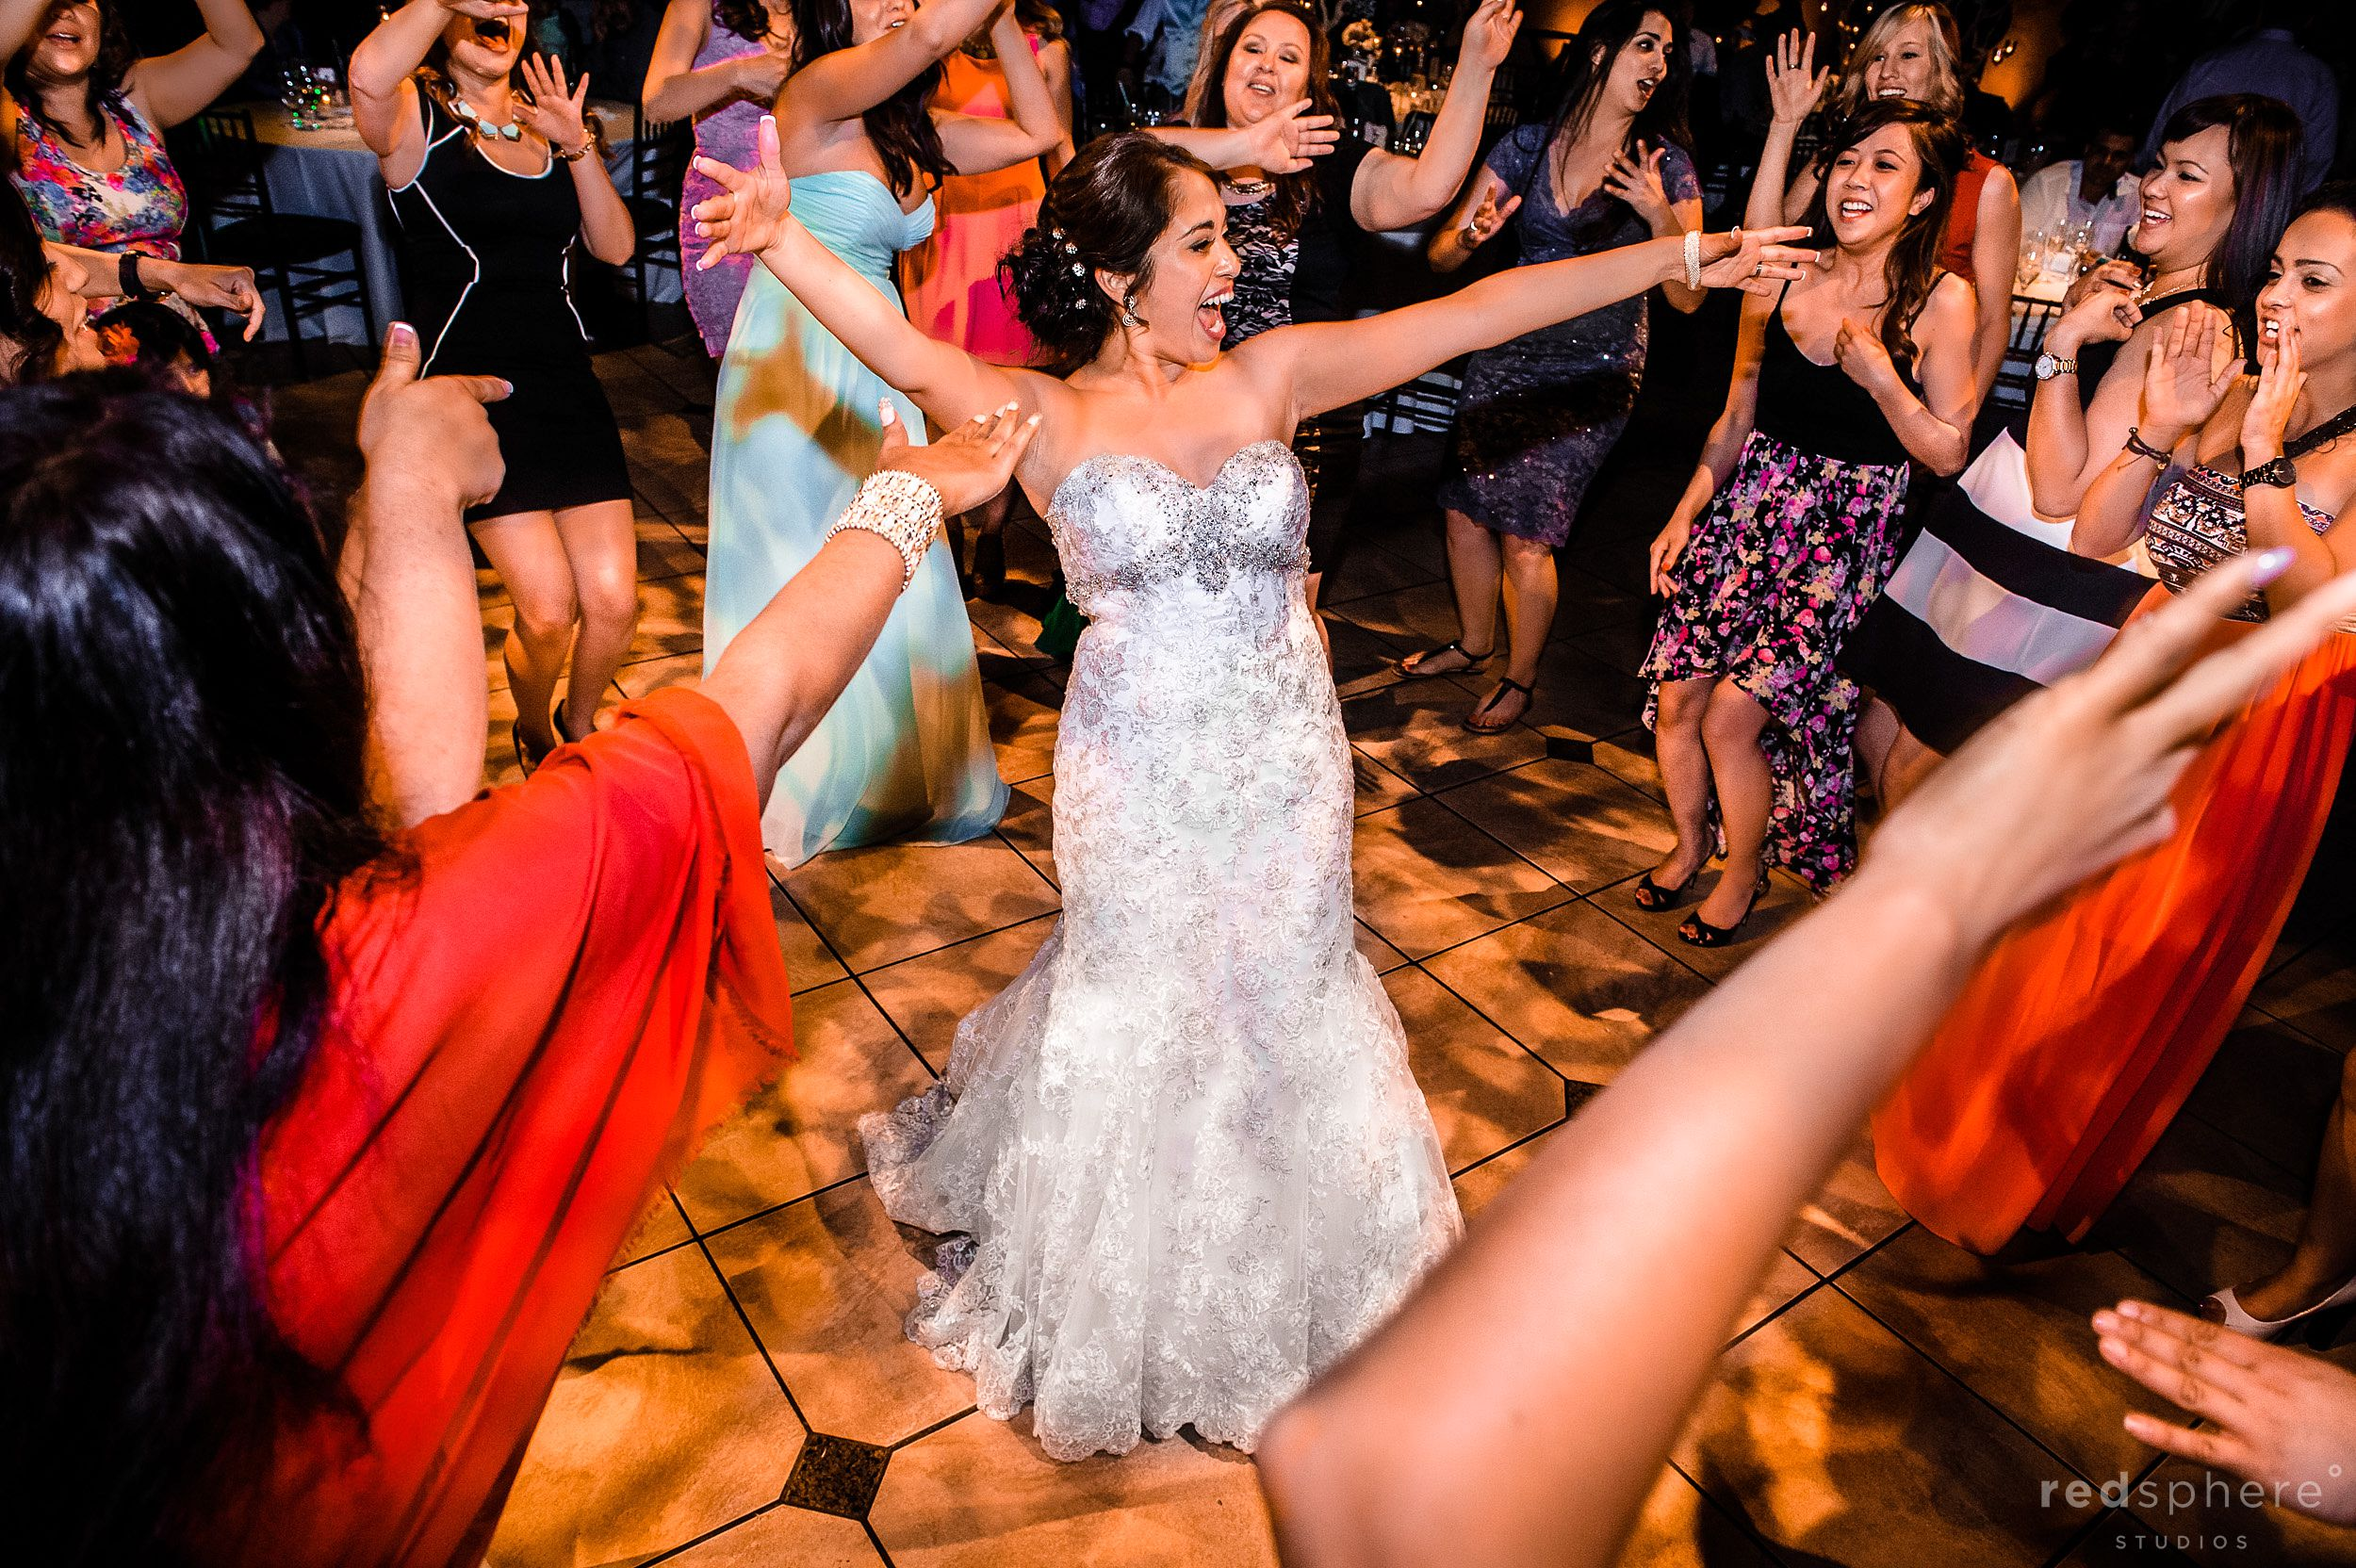 Bride Dances in Spotlight While Being Surrounded by Close Friends and Family at Wedding Reception